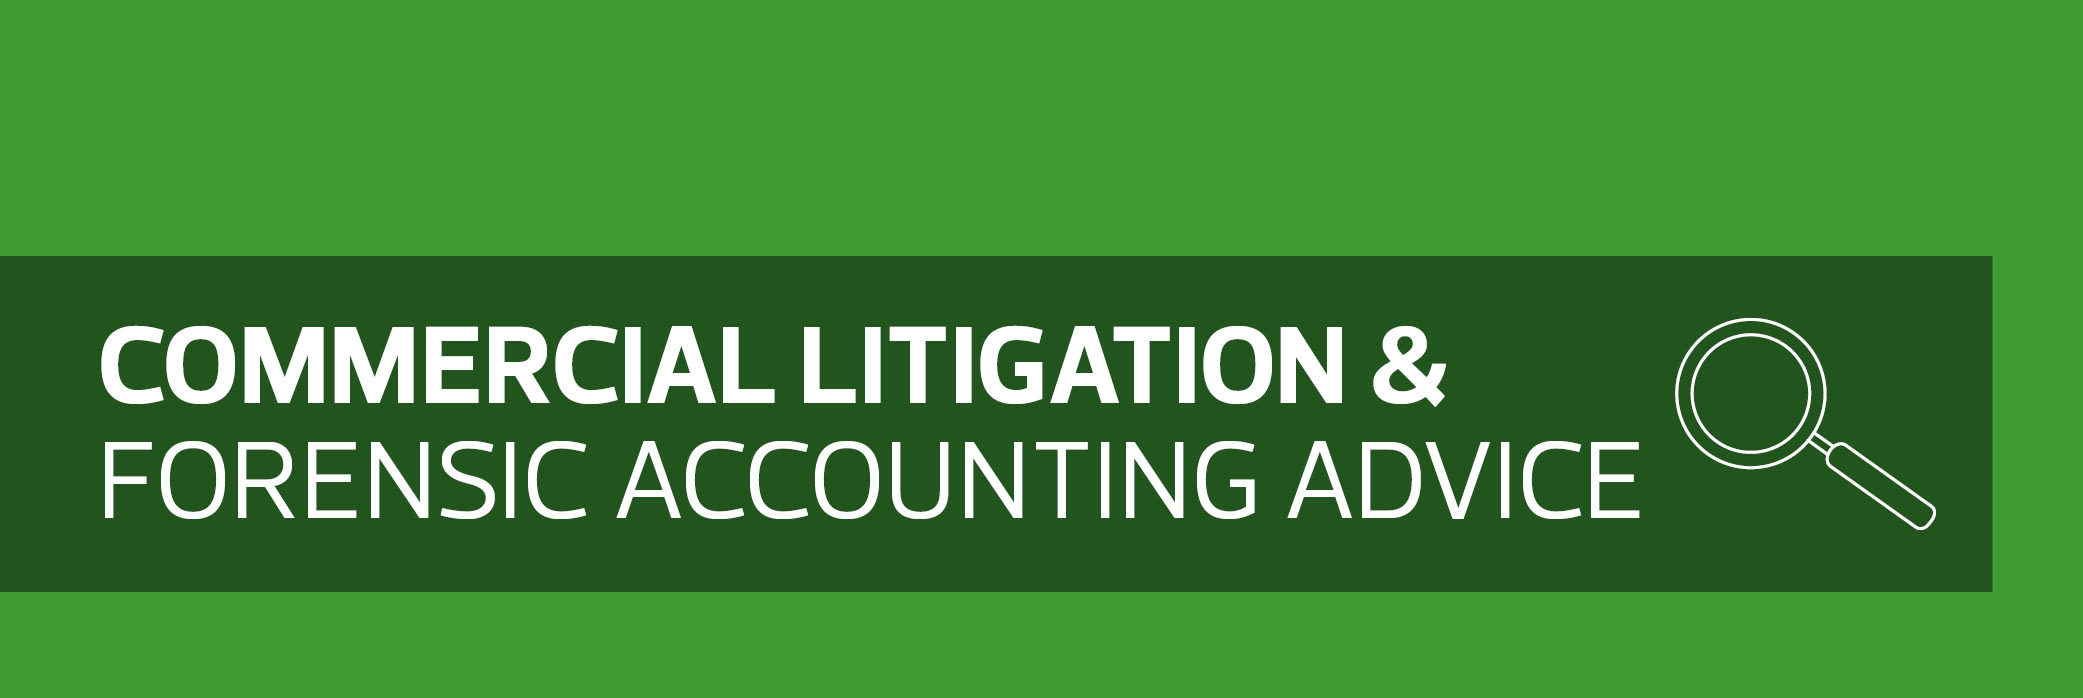 Commercial litigation & forensic accounting advice